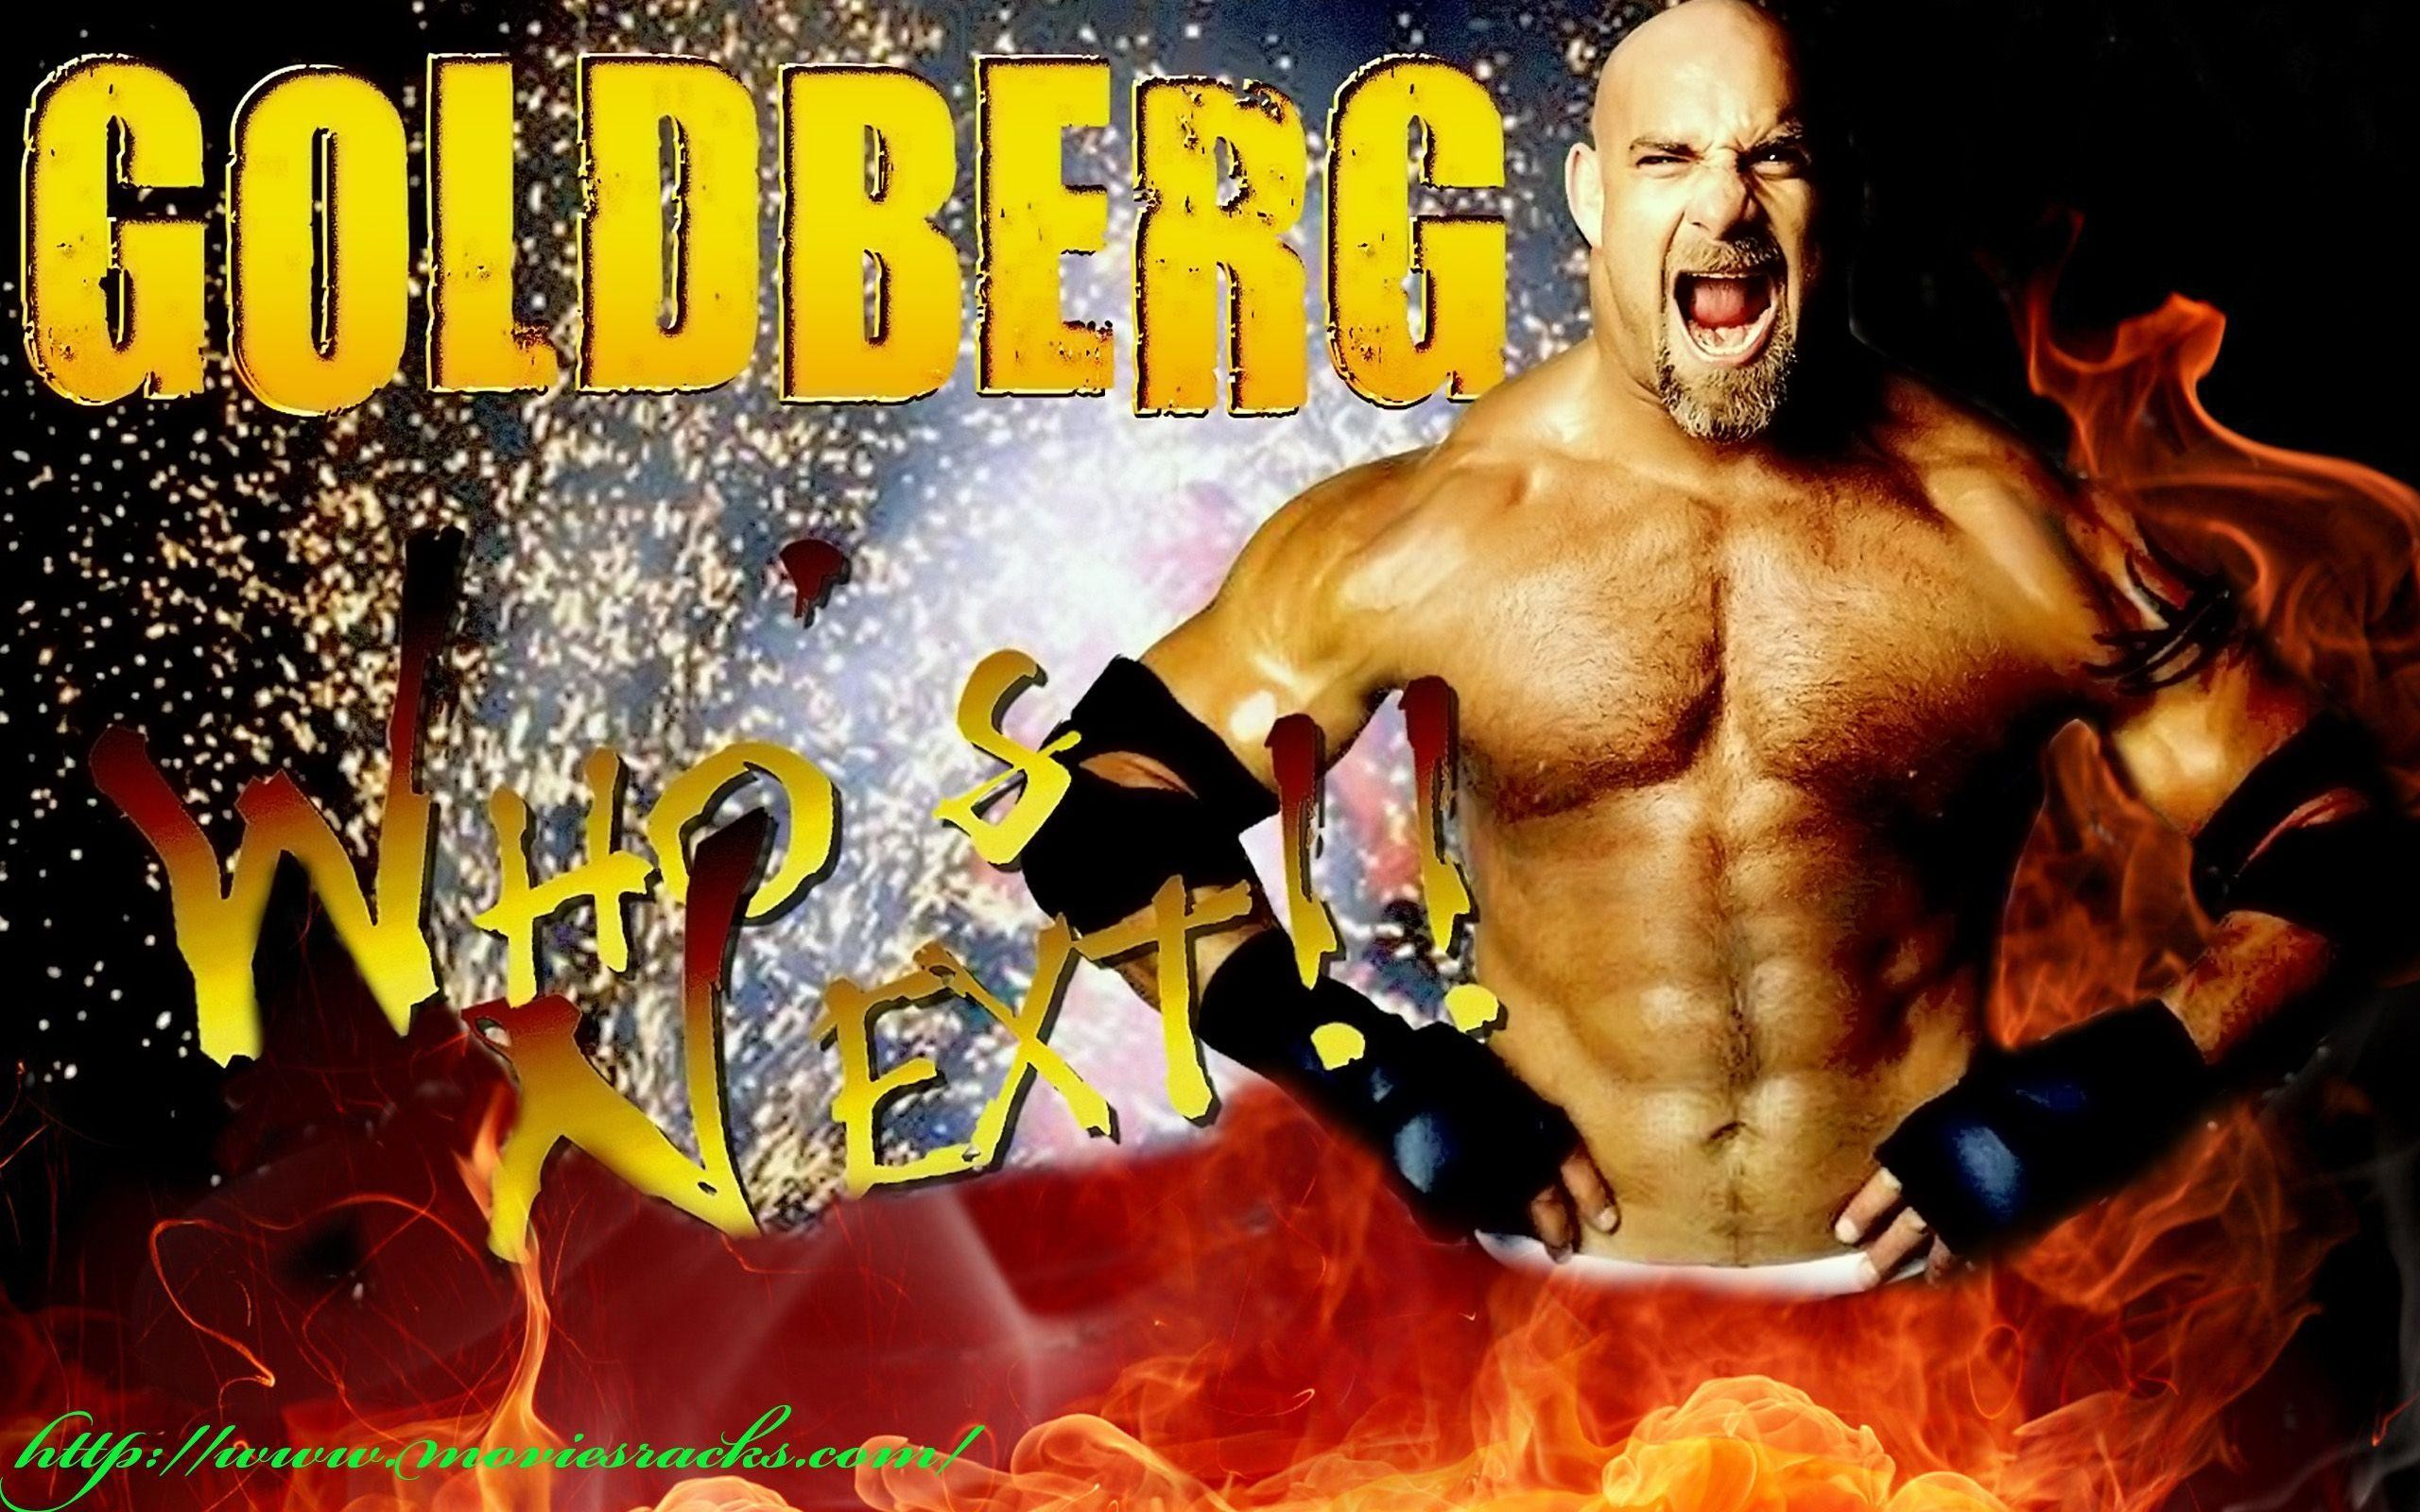 Wallpapers Bodybuilding Goldberg And Stone Cold Steve Austin Wwf ..